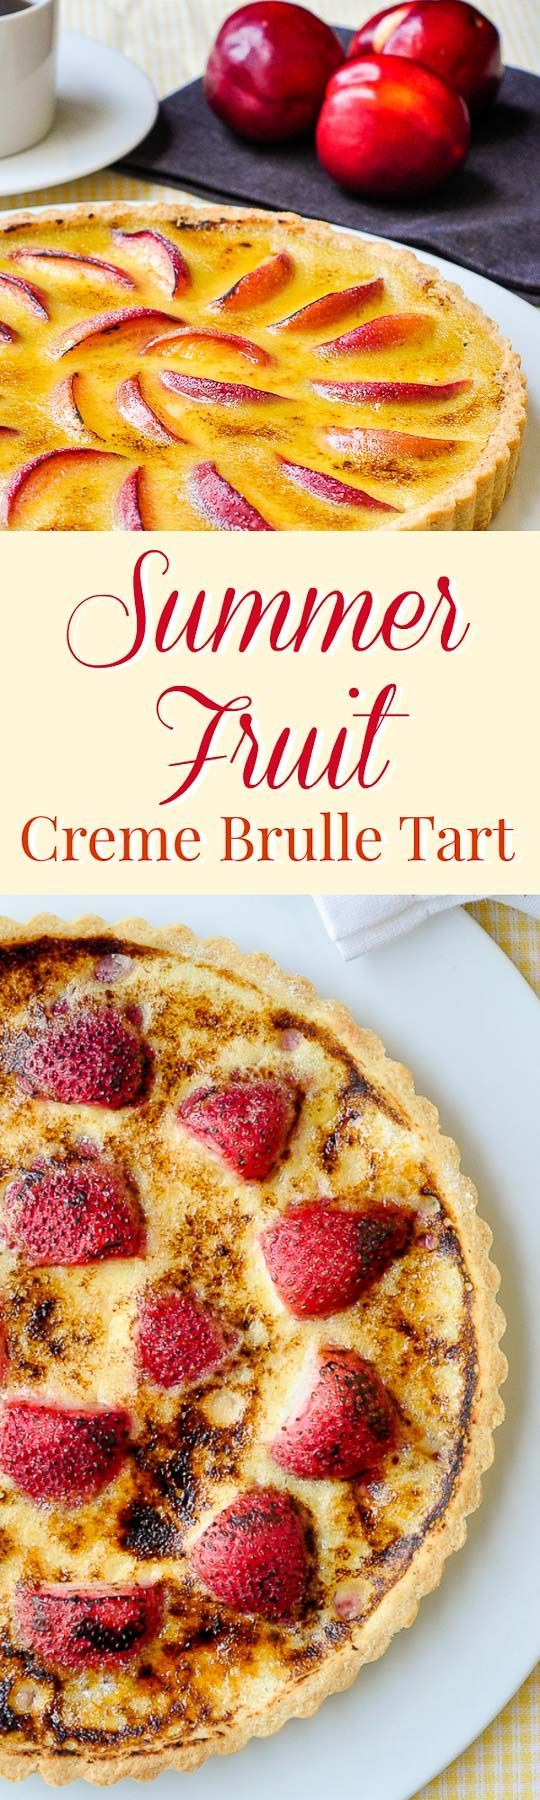 Summer Fruit Creme Brulee Tart – a versatile recipe to use whatever summer fruits and berries are at their best, make it with strawberries, raspberries, cherries, peaches and more.